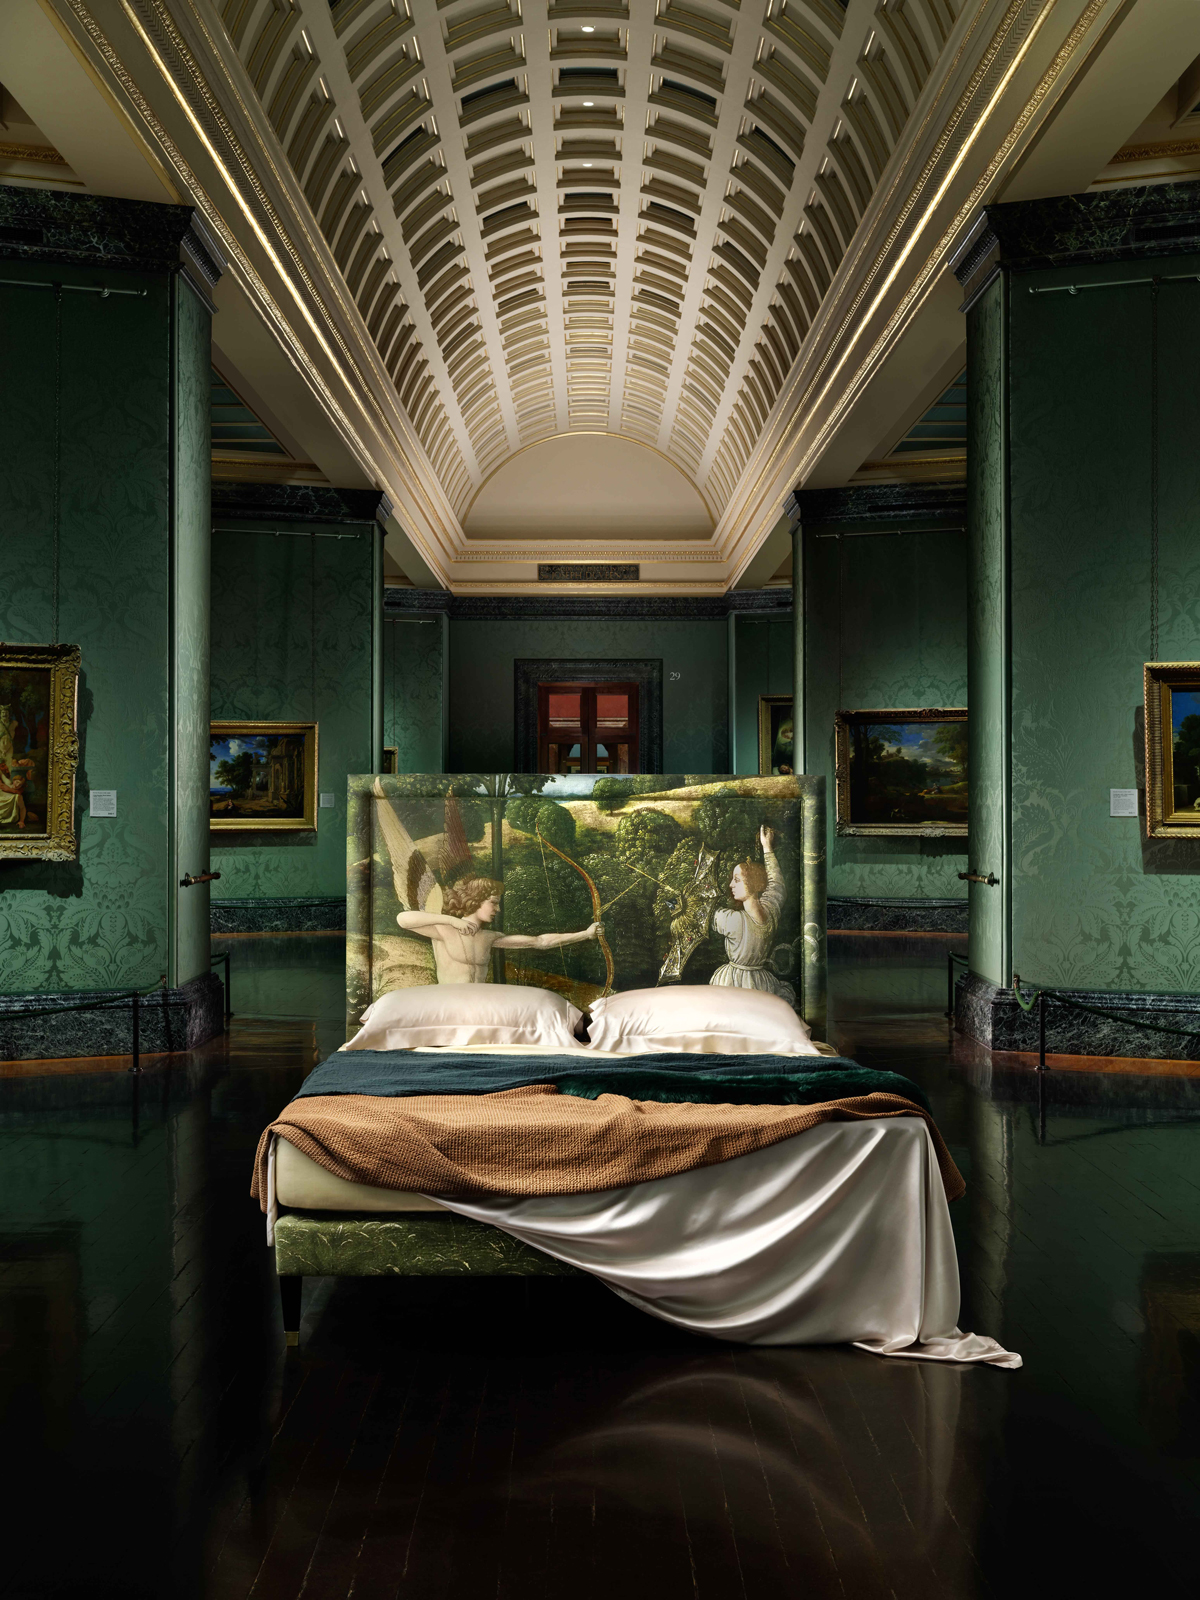 Savoir Beds & National Gallery launch range inspired by famous paintings